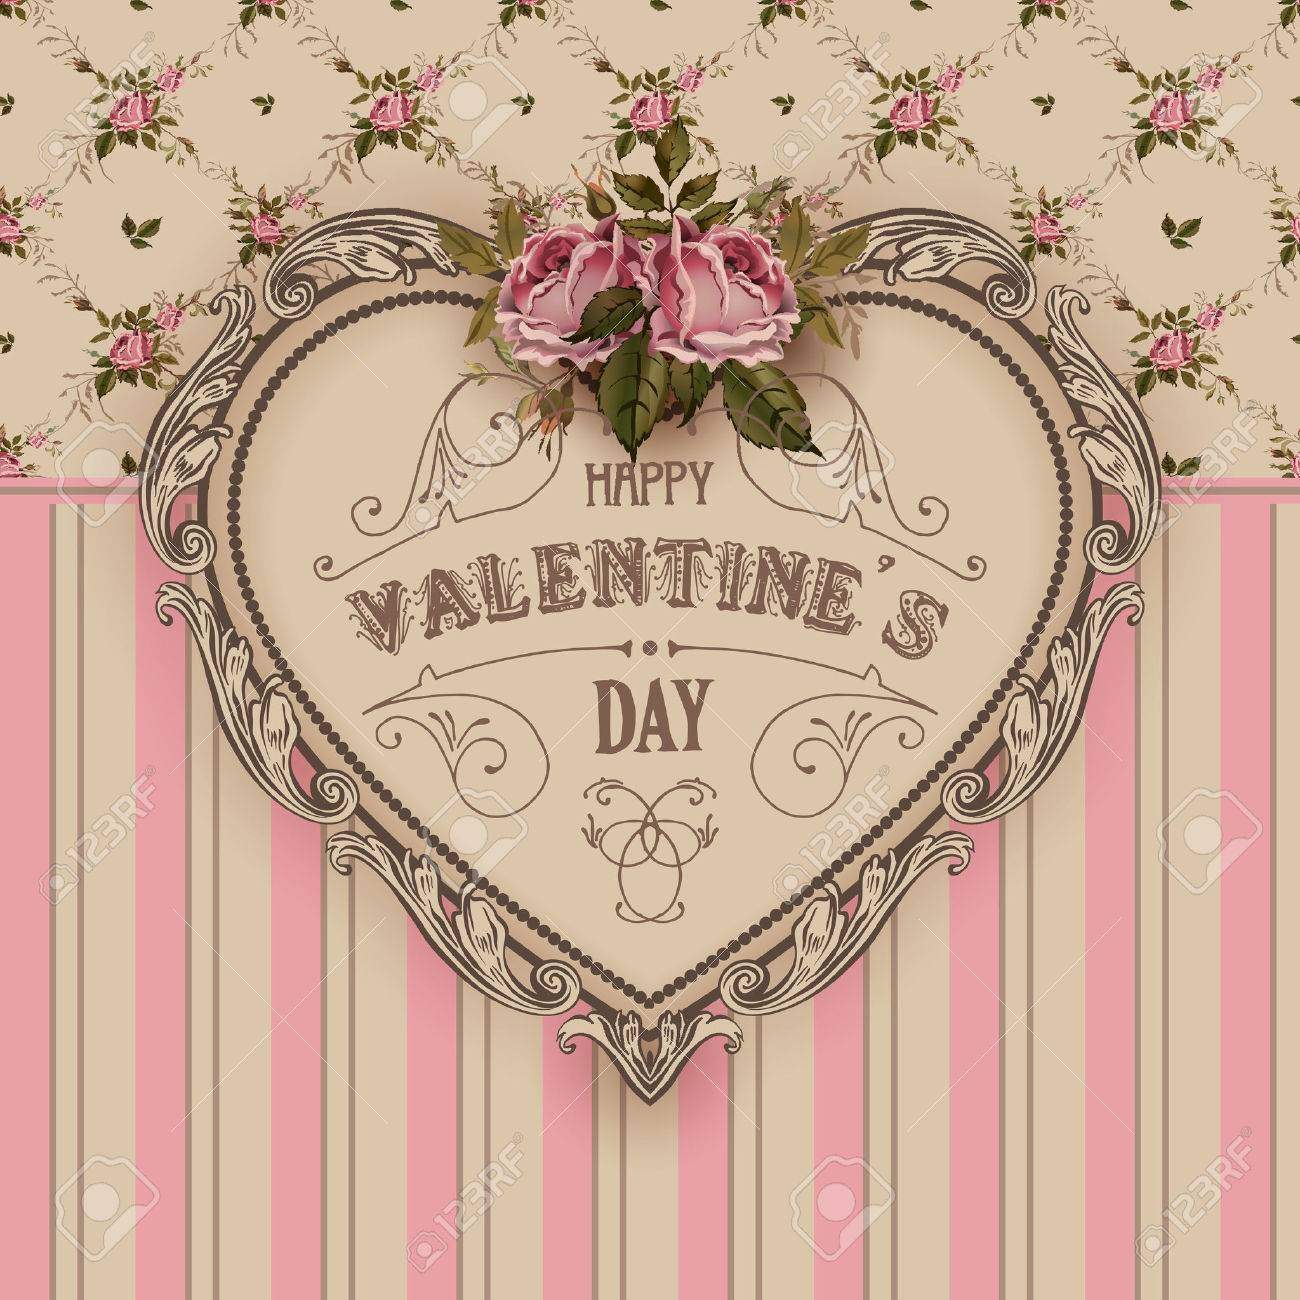 vintage shabby chic greeting card with roses royalty free cliparts